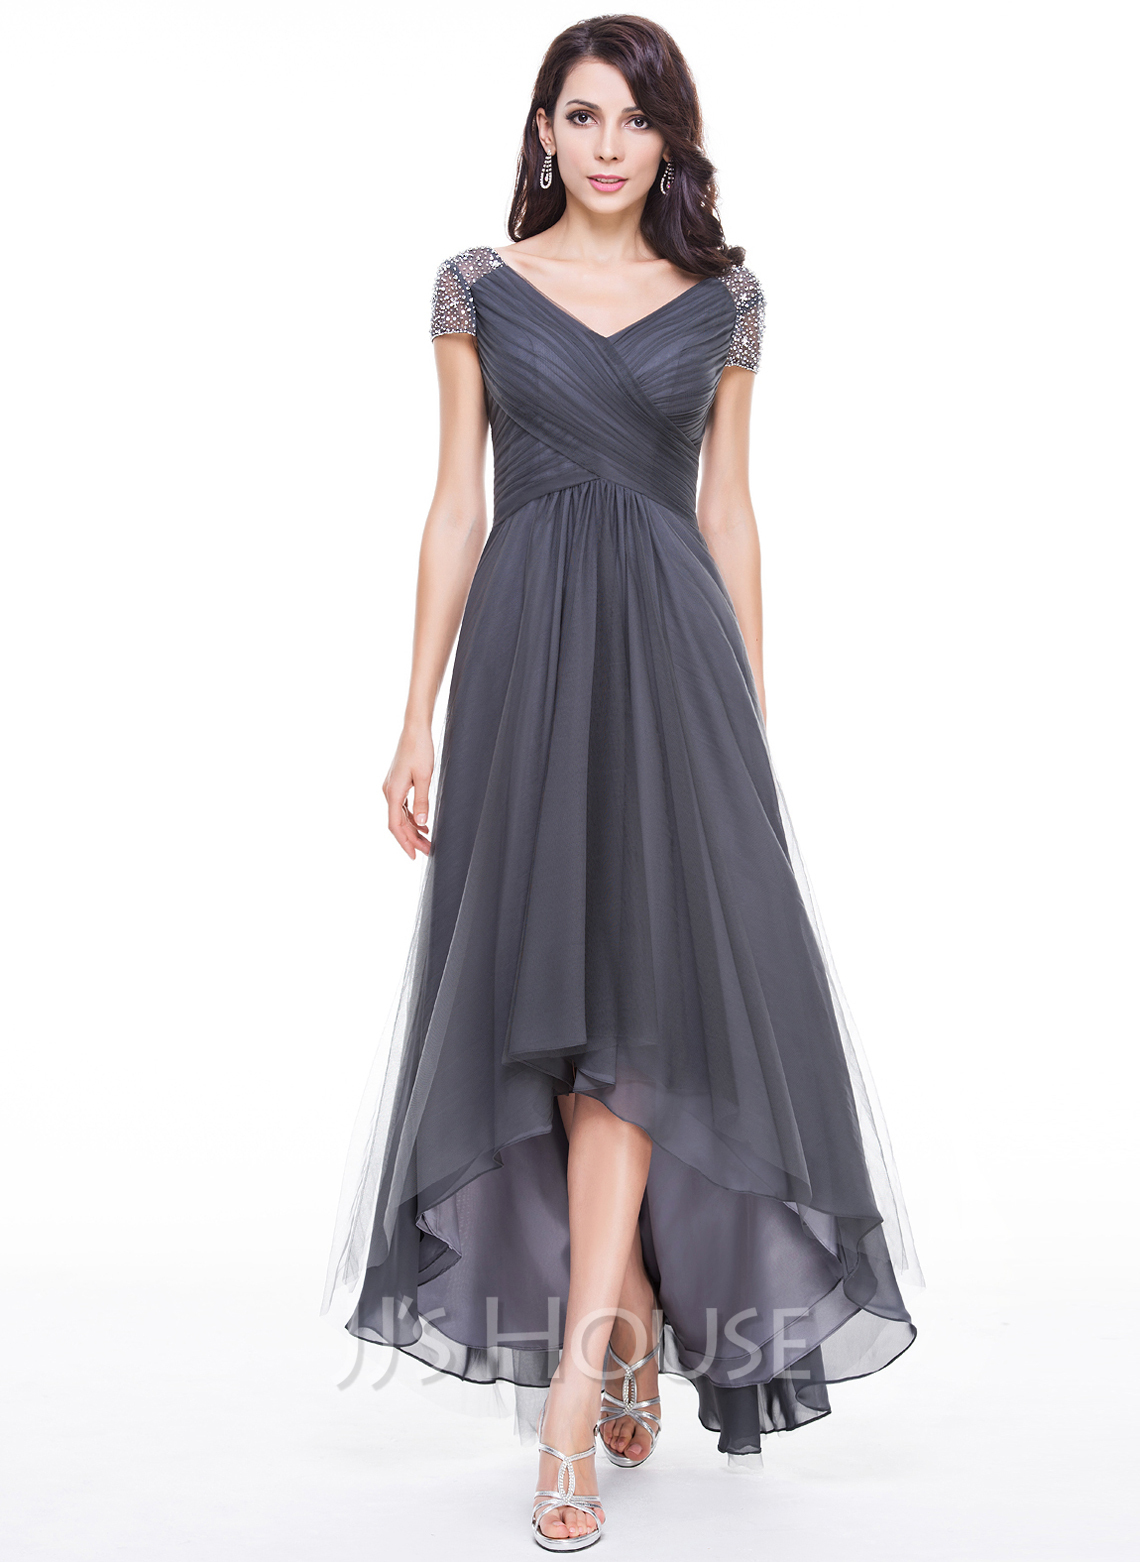 Affordable Mother of the Bride Dresses | JJ\'sHouse